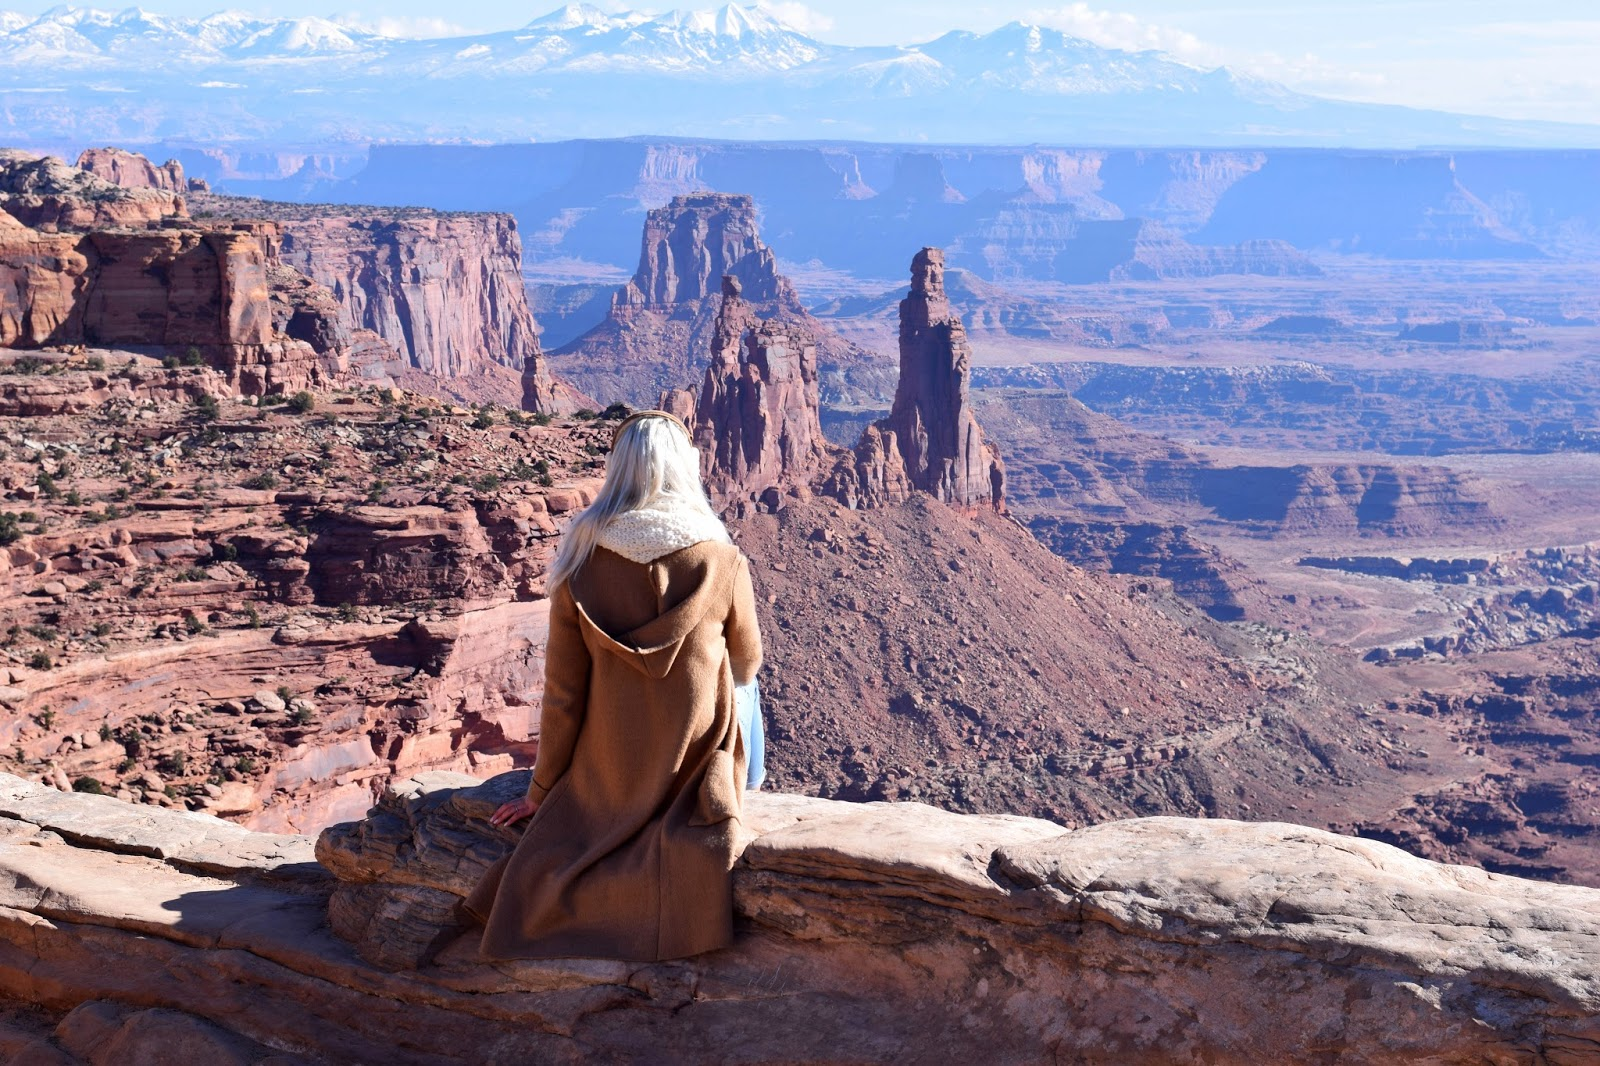 canyonland, utah, national park, hike, german blondy